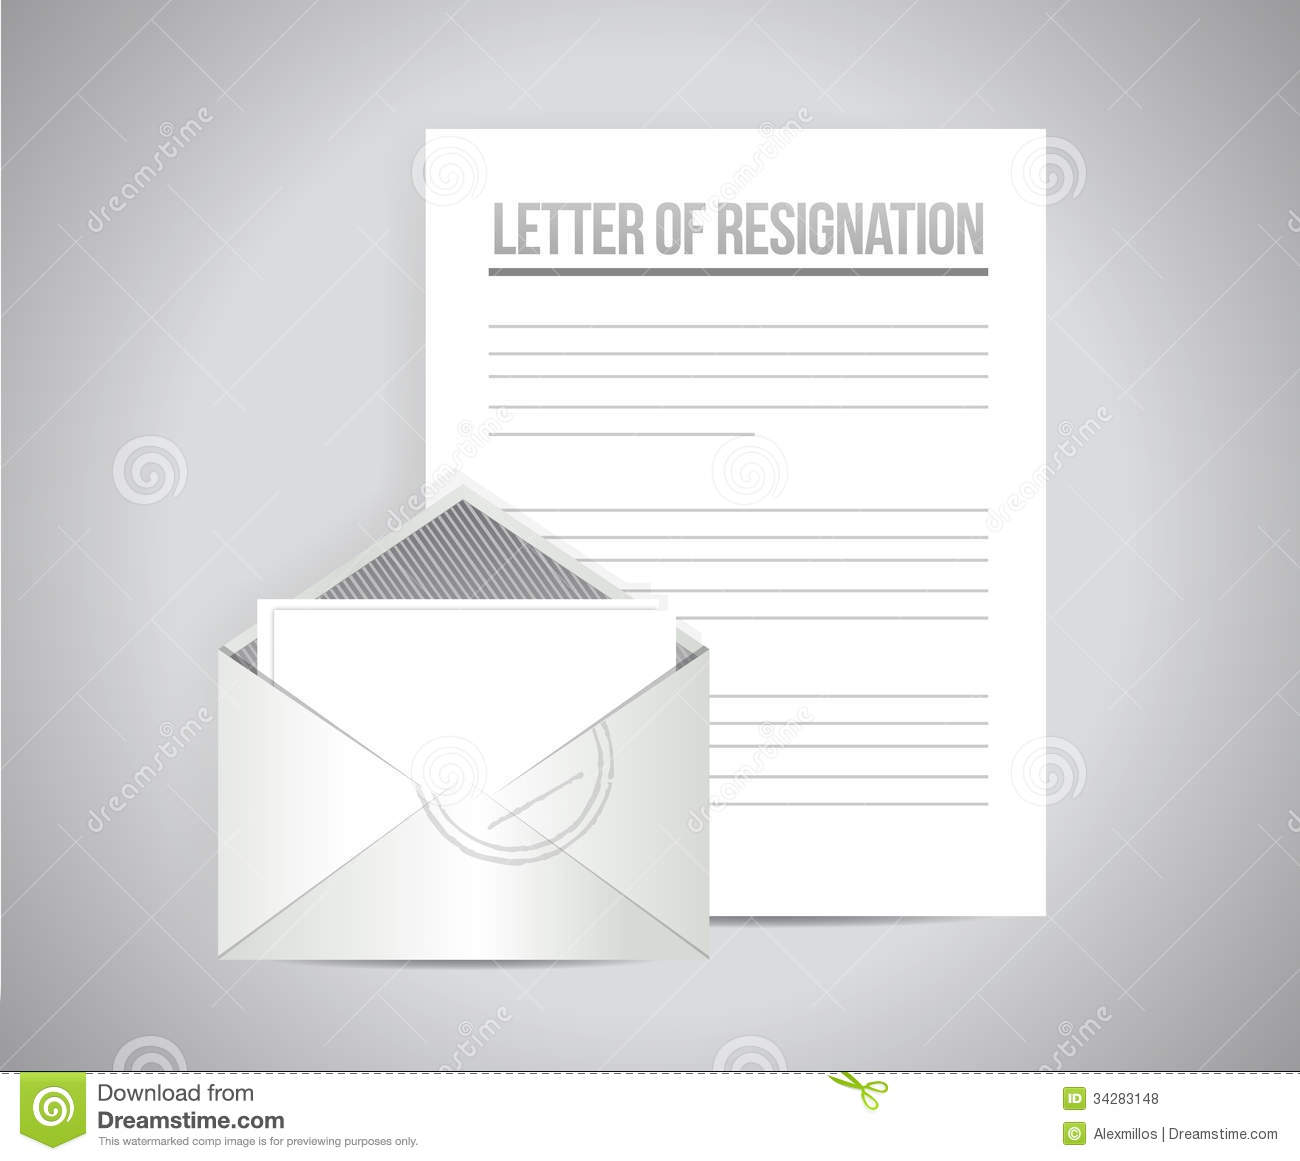 Letter of resignation papers illustration design stock illustration download letter of resignation papers illustration design stock illustration illustration of unhappy escape spiritdancerdesigns Gallery